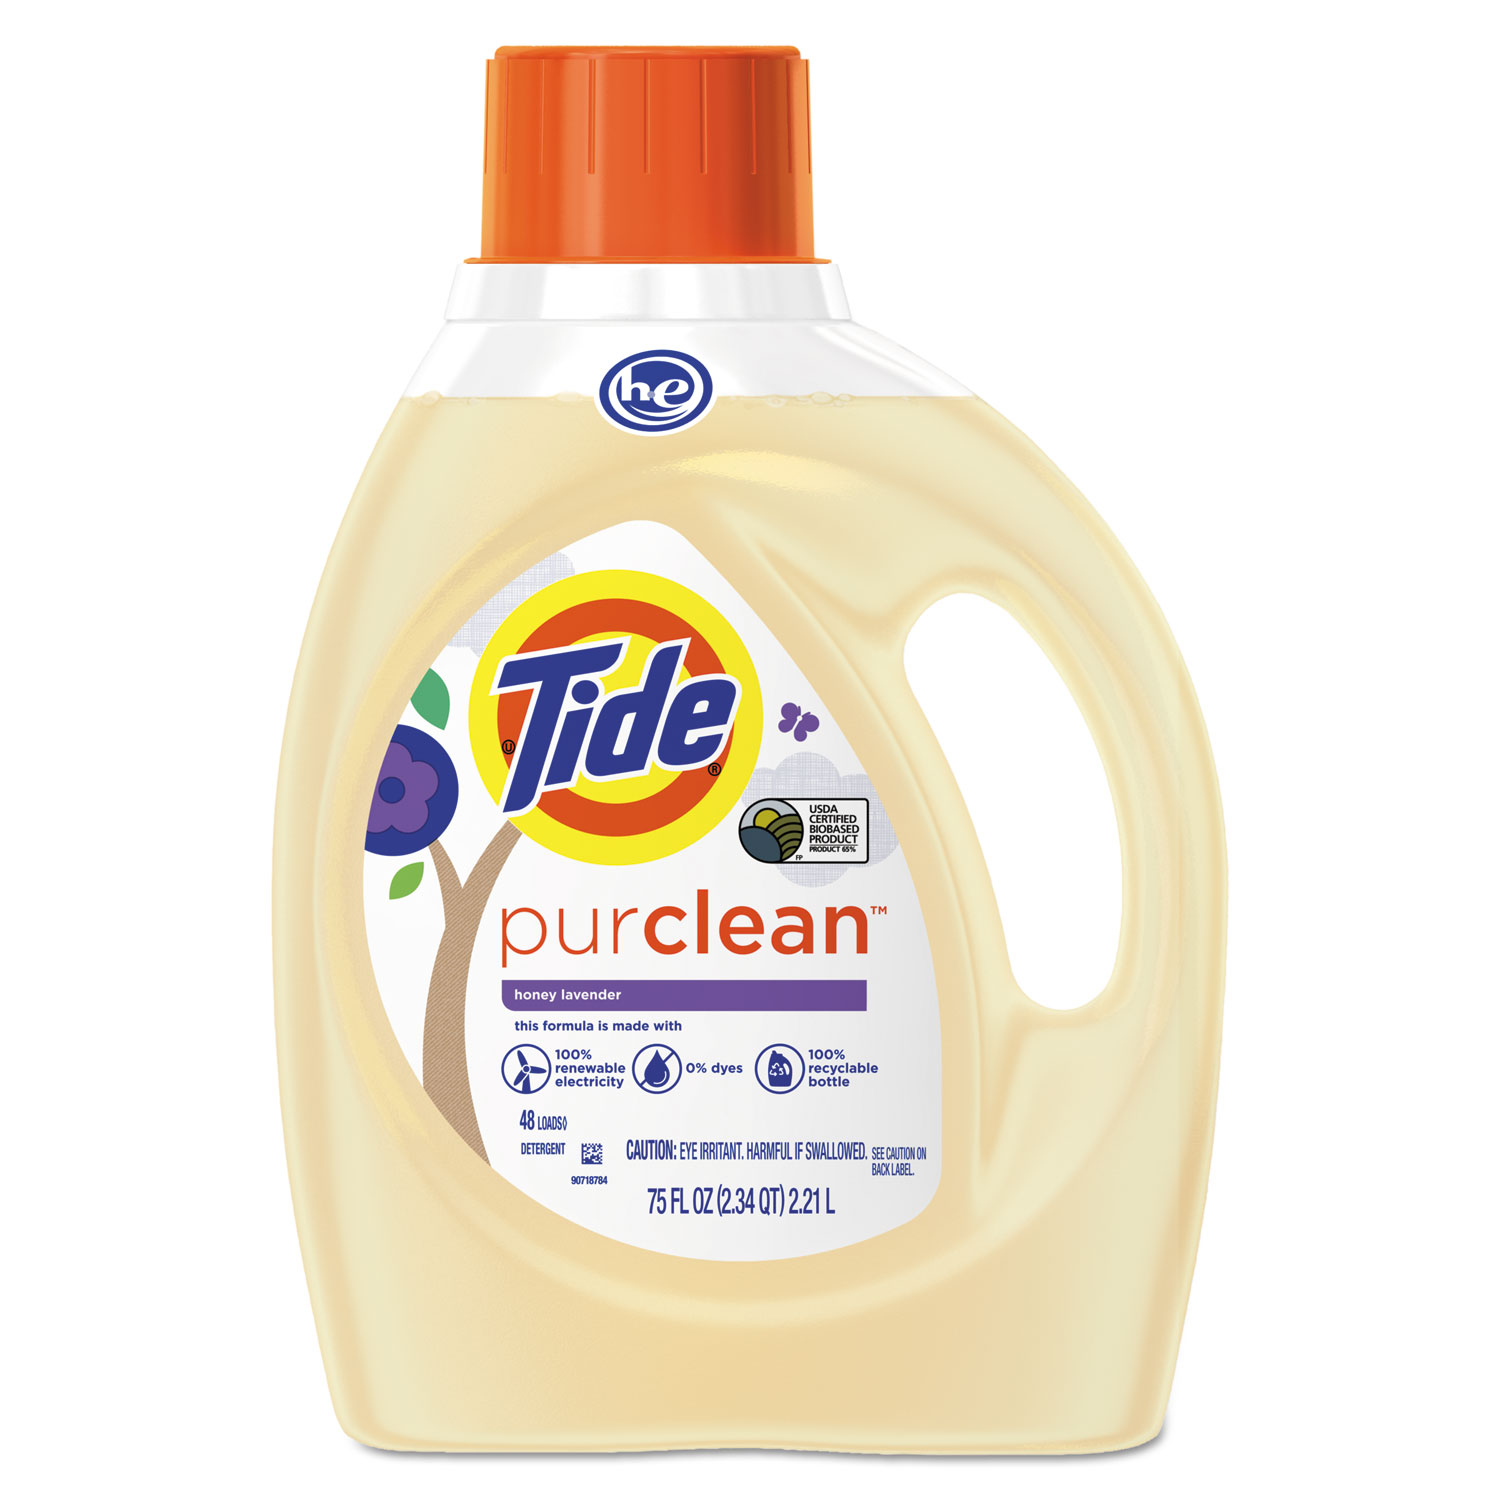 laundry detergent We reviewed high efficiency and standard laundry detergents, testing for their ability to remove stains from polyester and cotton fabrics in both hot and cold water check out the full reviews of.